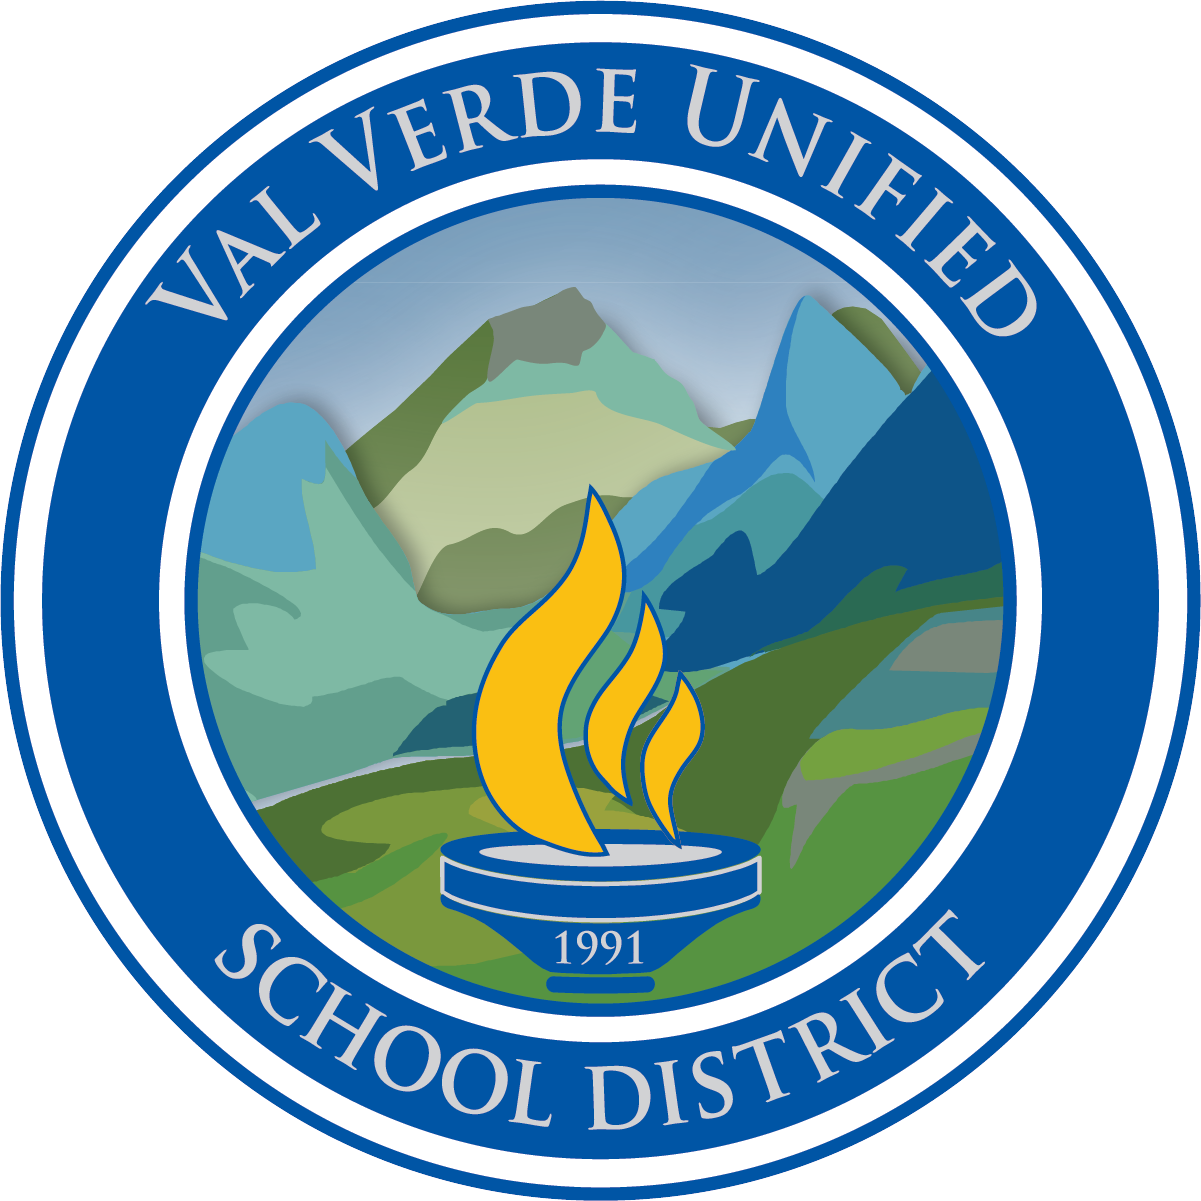 Welcome to Val Verde Unified School District